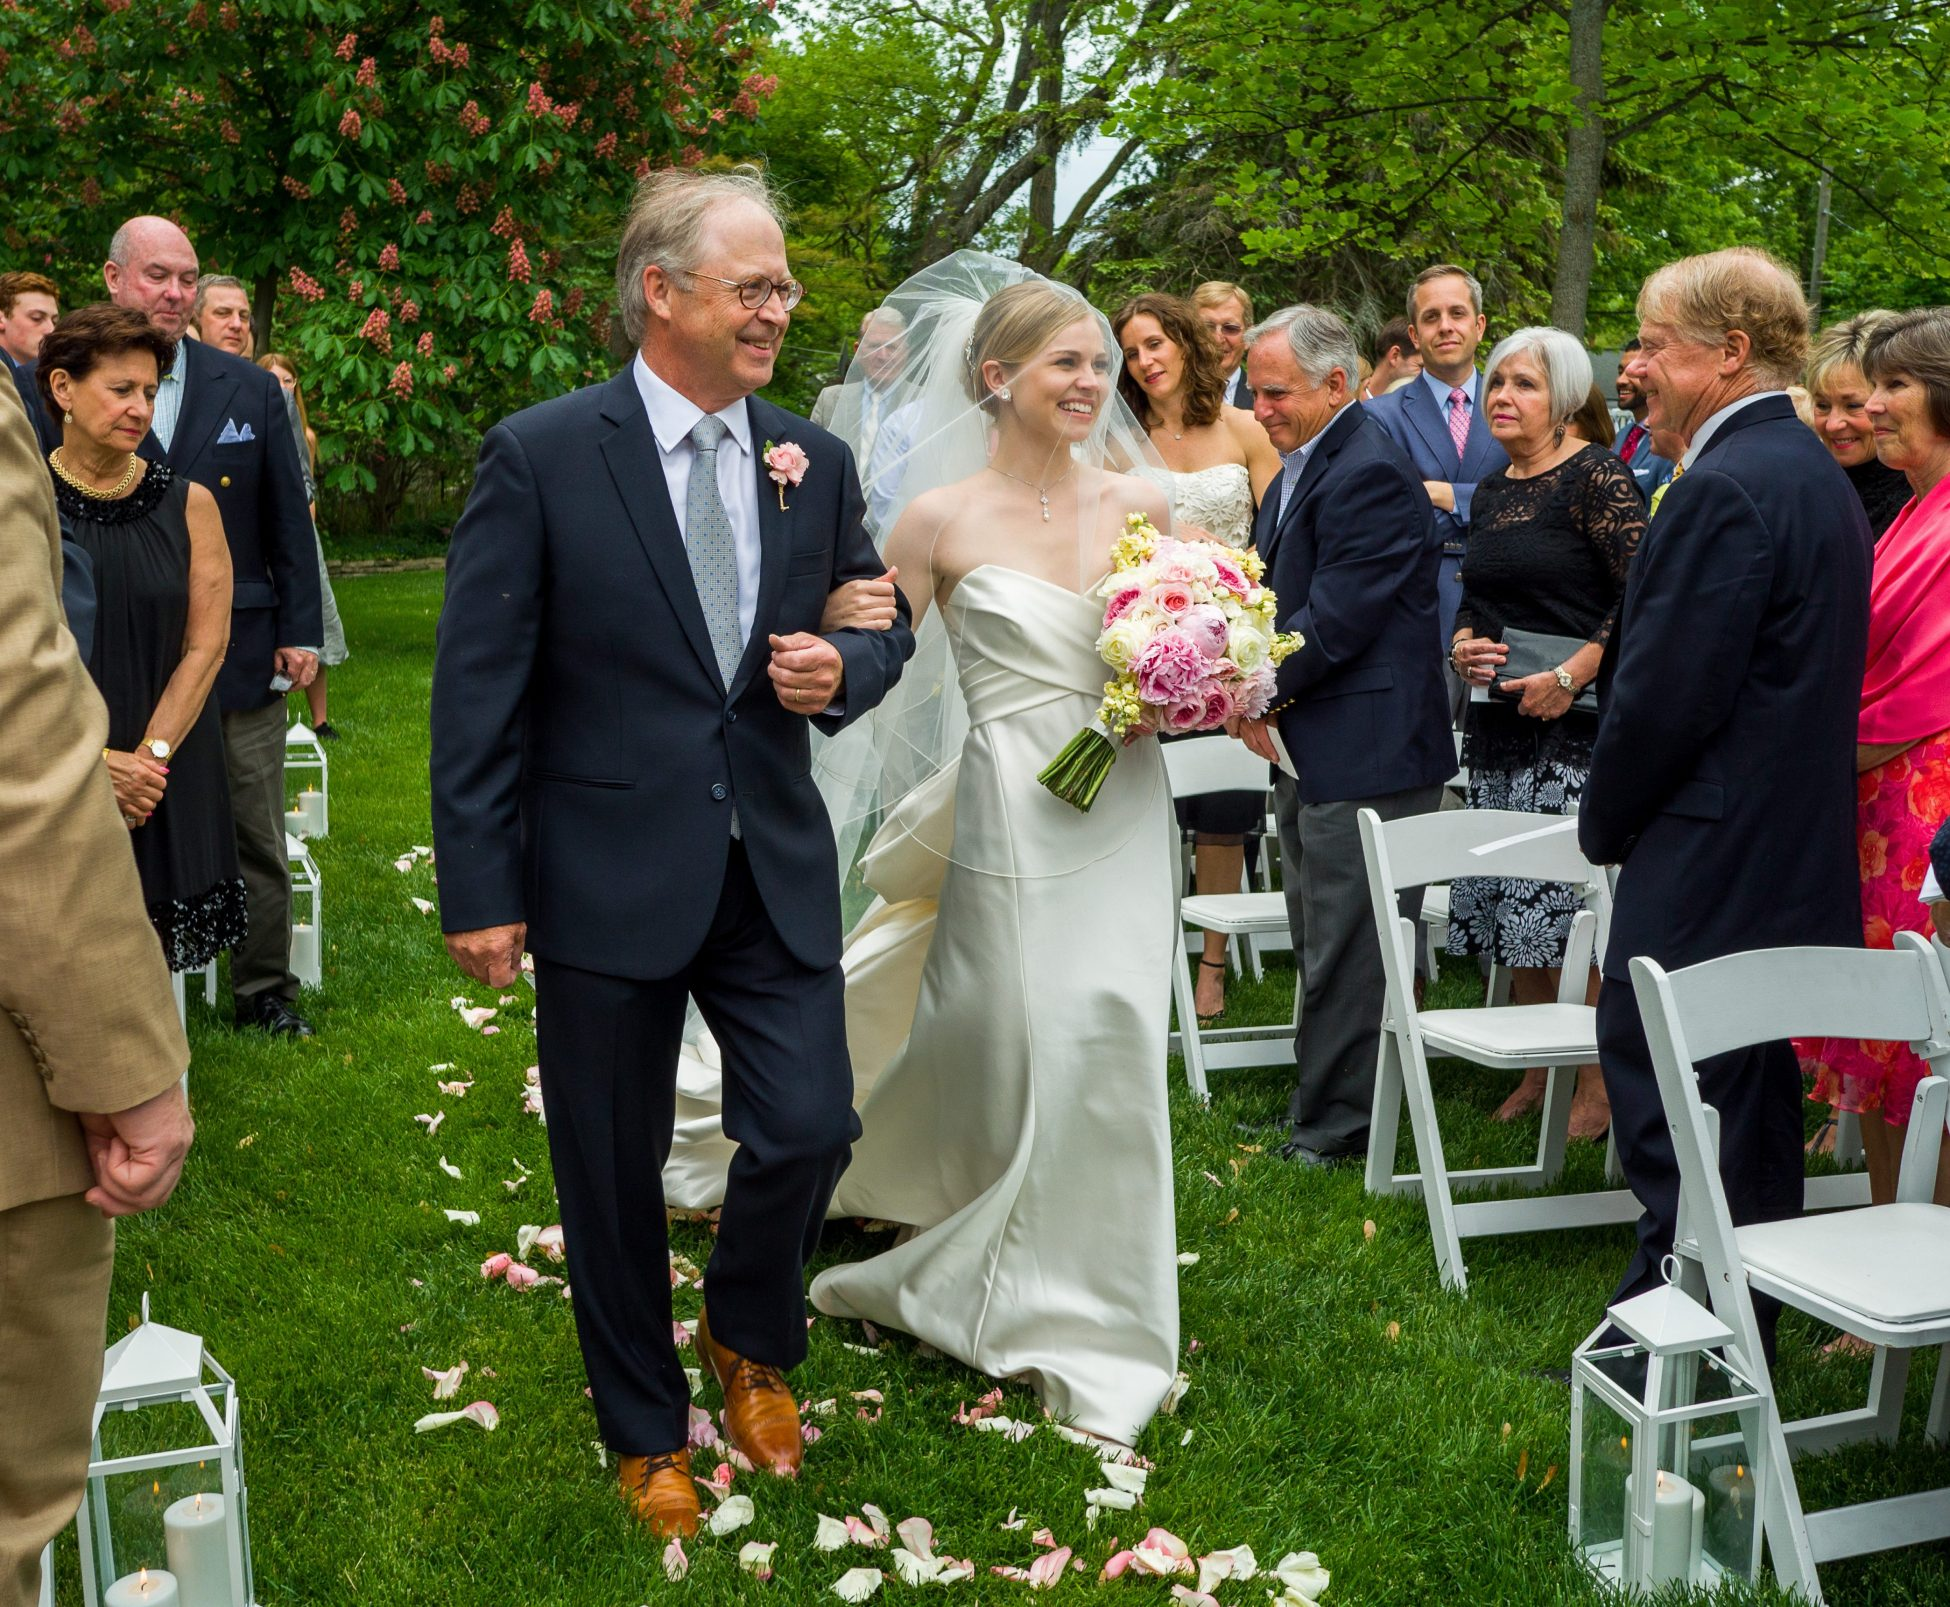 Bride and her Father by Traverse City Wedding Photographer Thomas Kachadurian